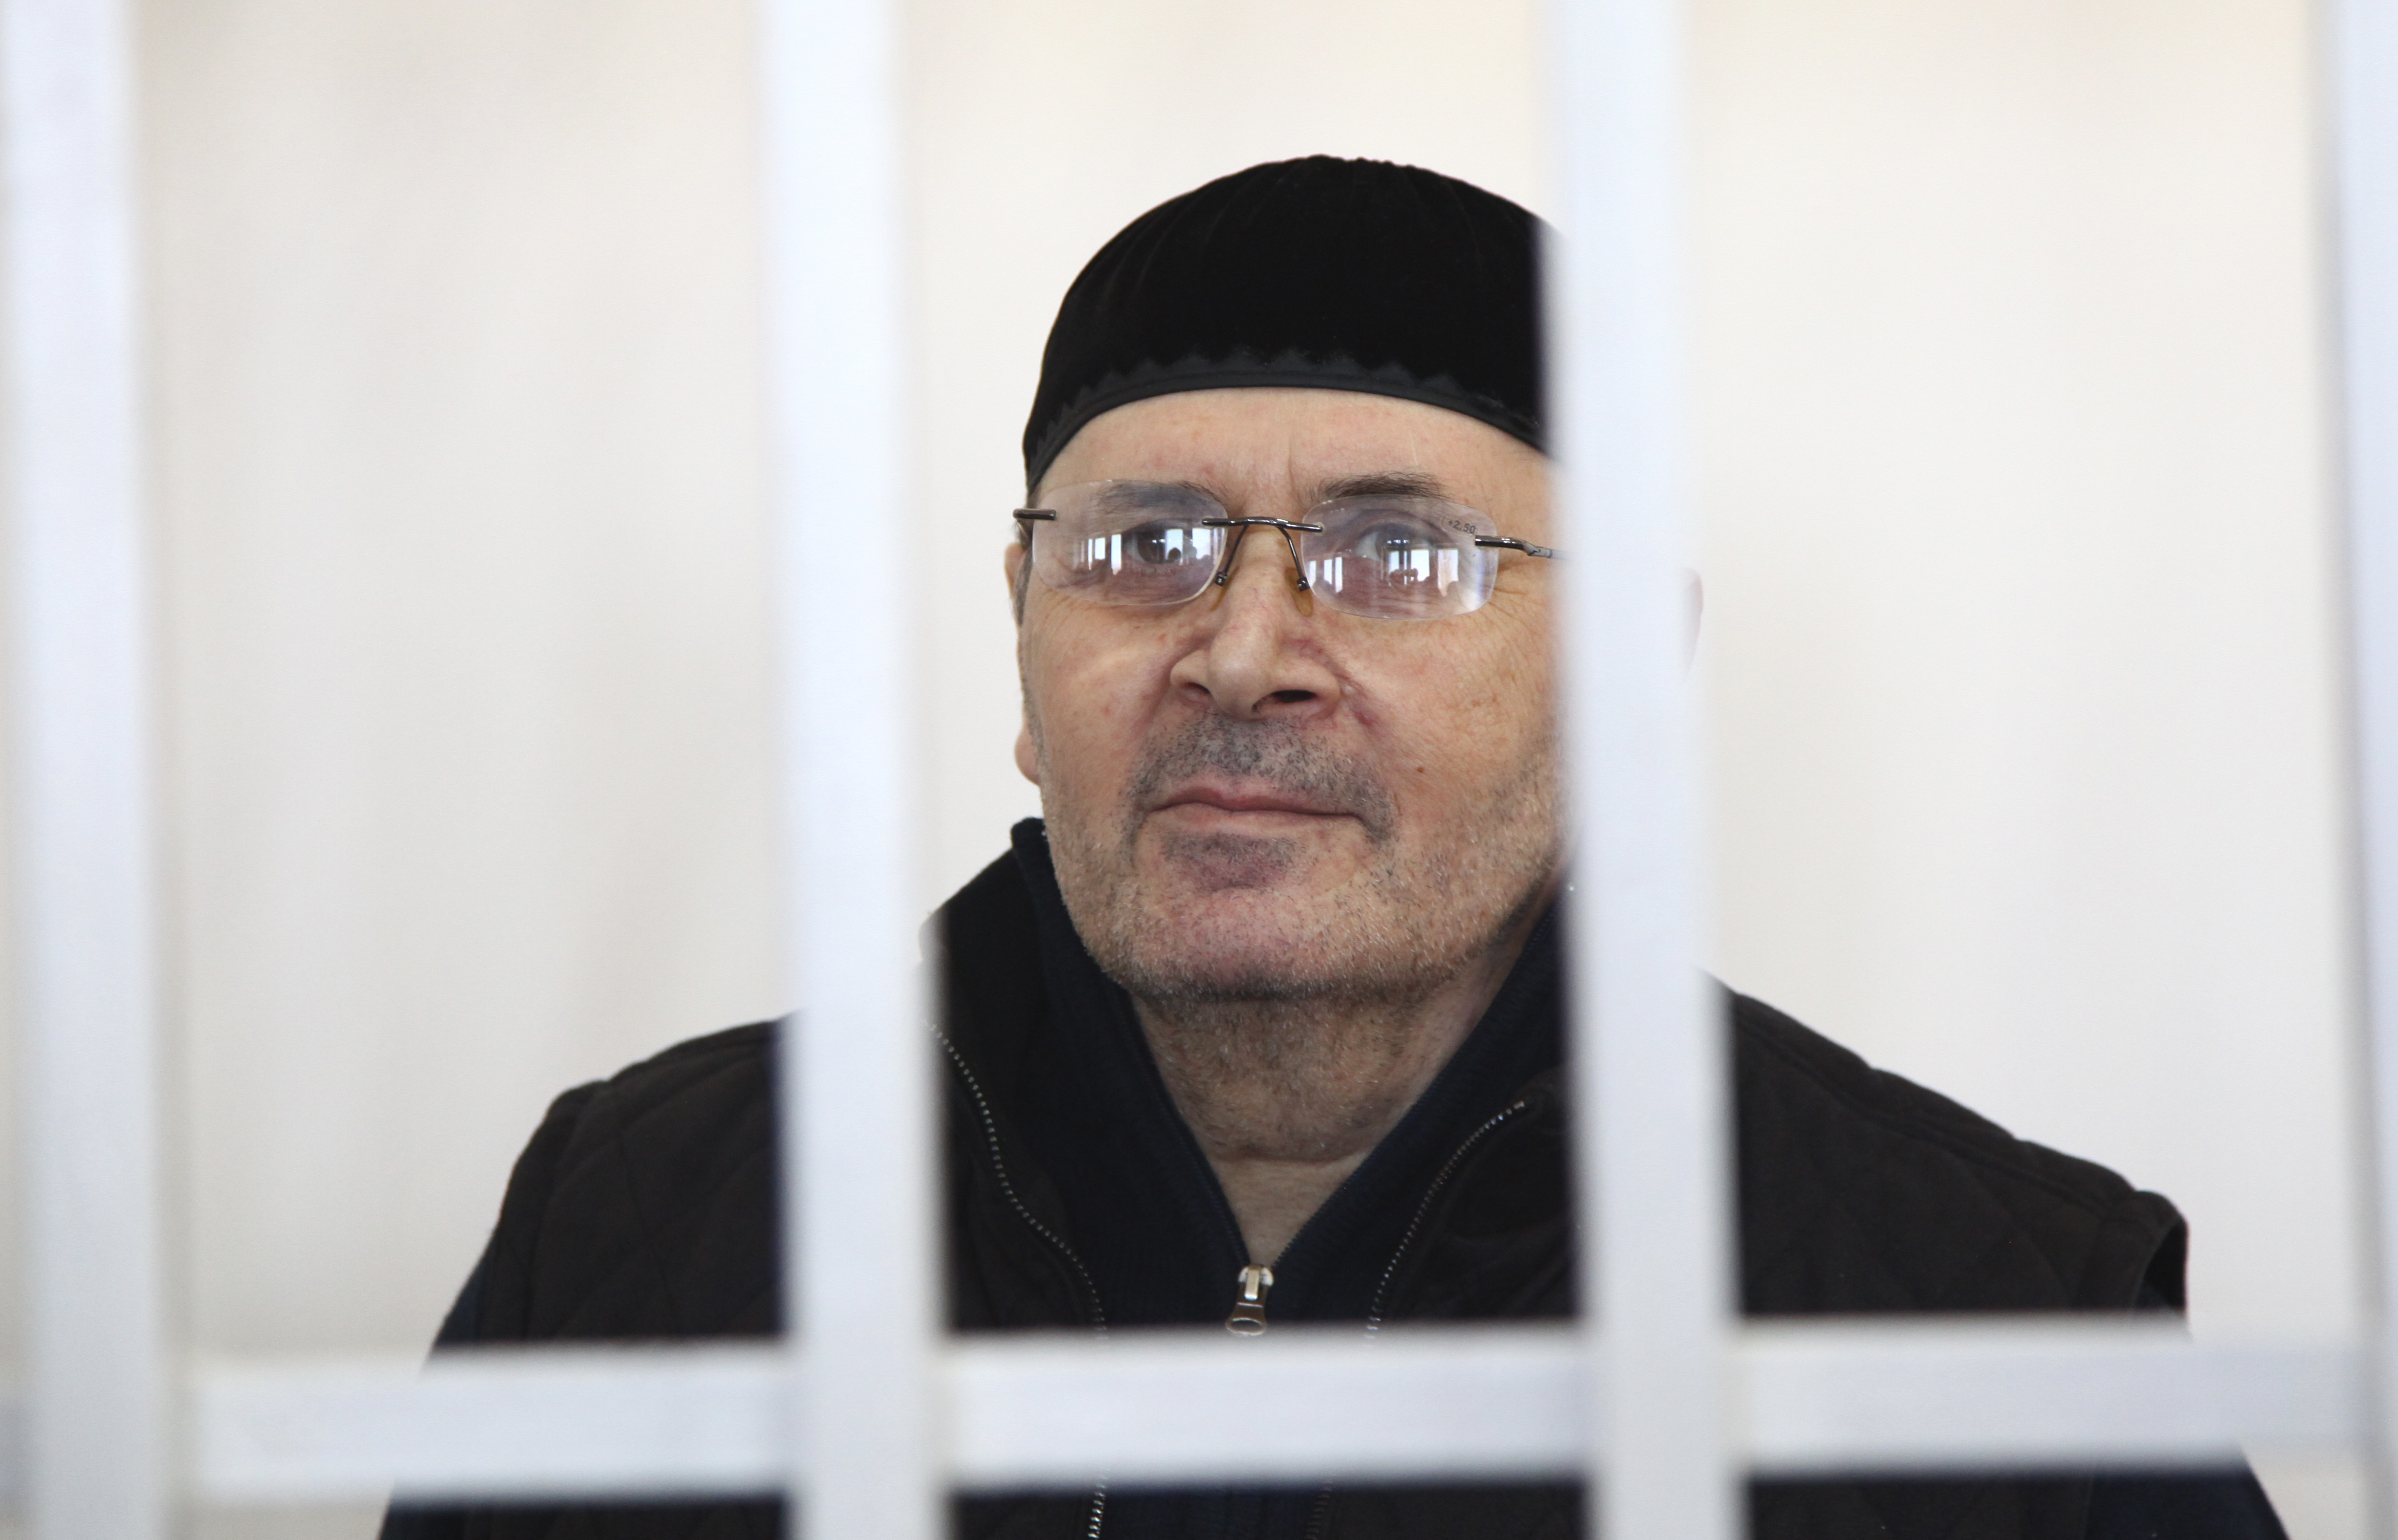 Oyub Titiyev, the head of regional branch of Russian human rights group Memorial, attends a court hearing in Grozny, Russia, March 6, 2018. A court in Chechnya extended his detention of Oyub Titiev until May 9. And Friday, he lost an appeal of that ...